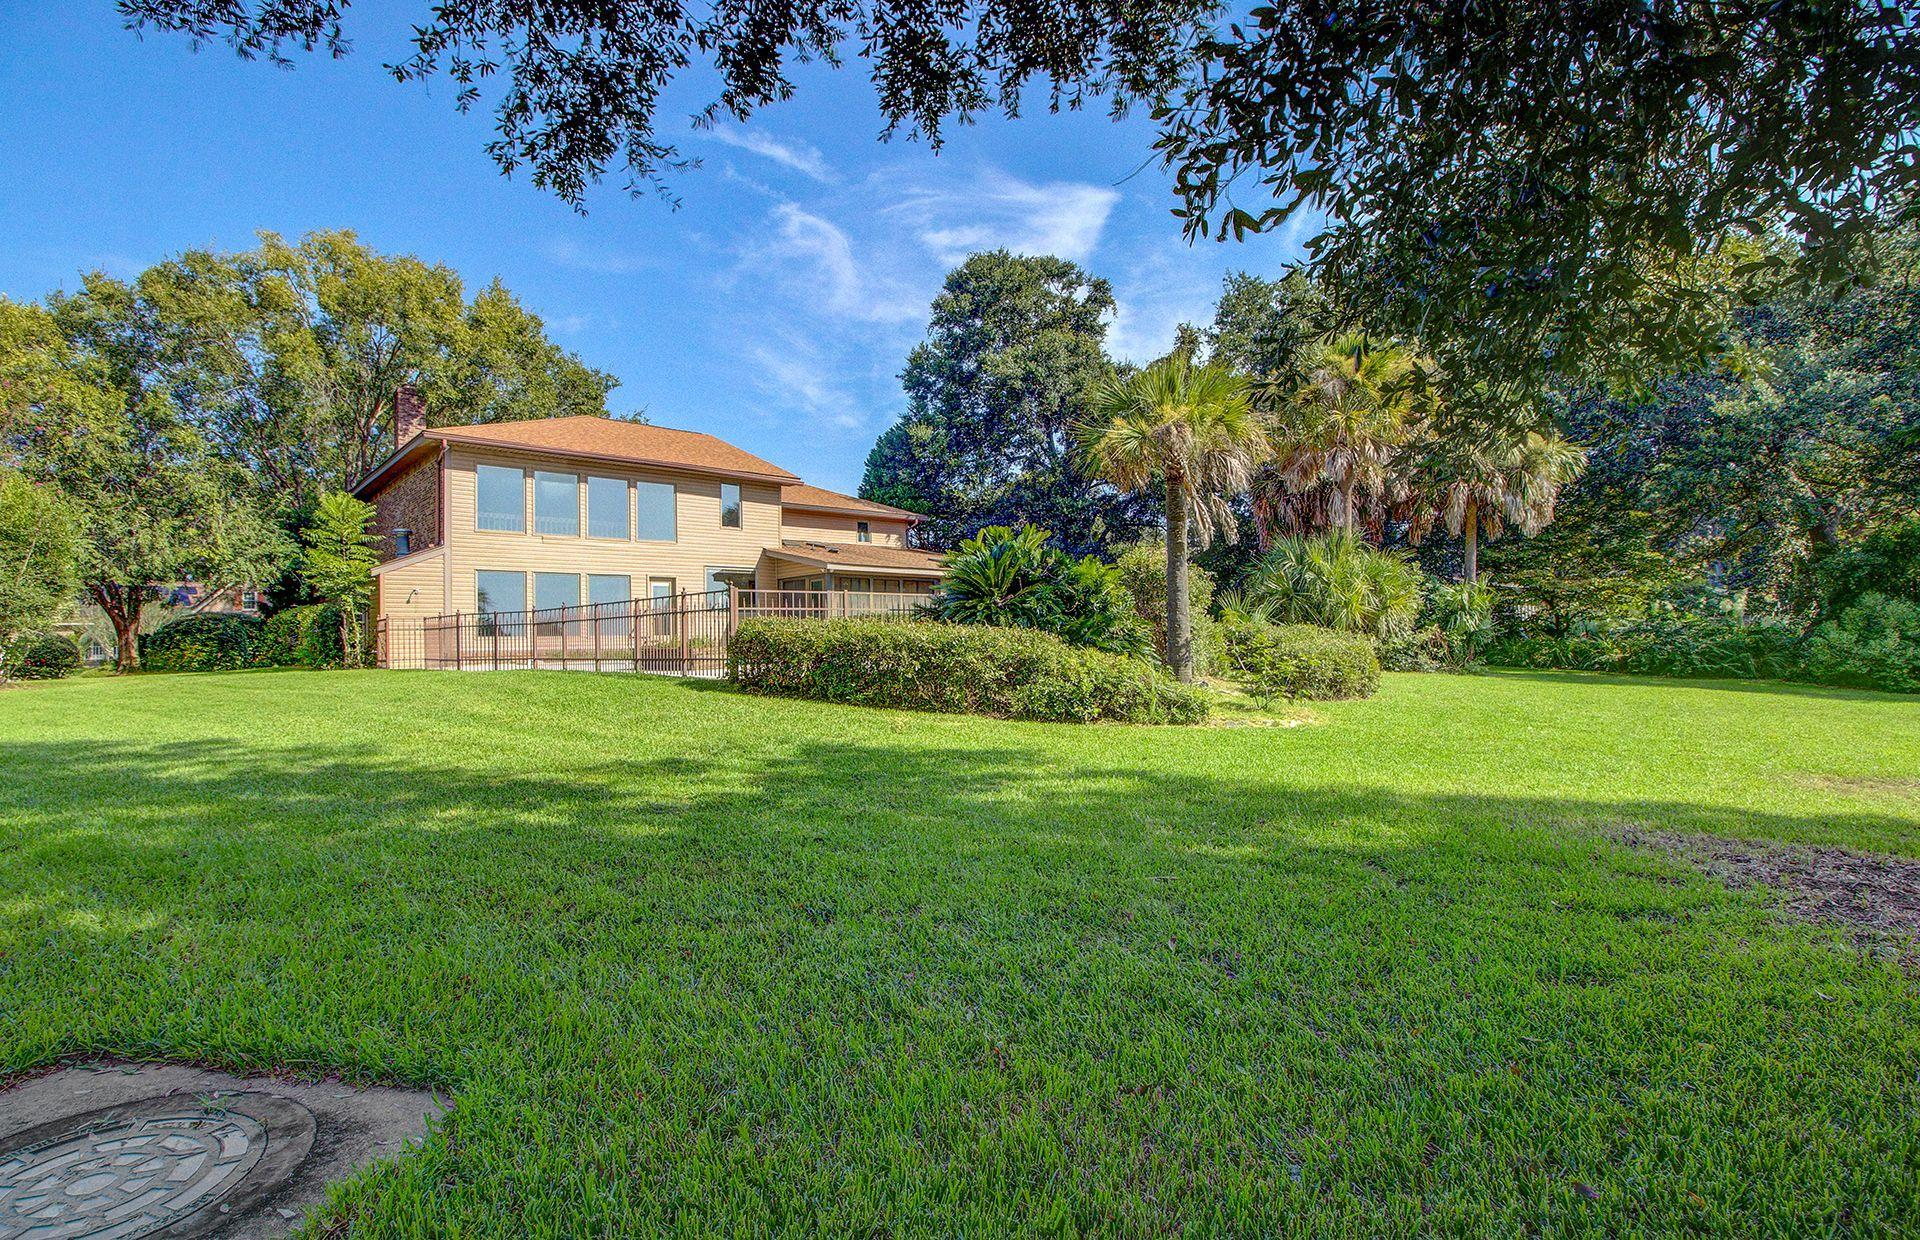 Rivers Point Homes For Sale - 141 Oyster Point, Charleston, SC - 38